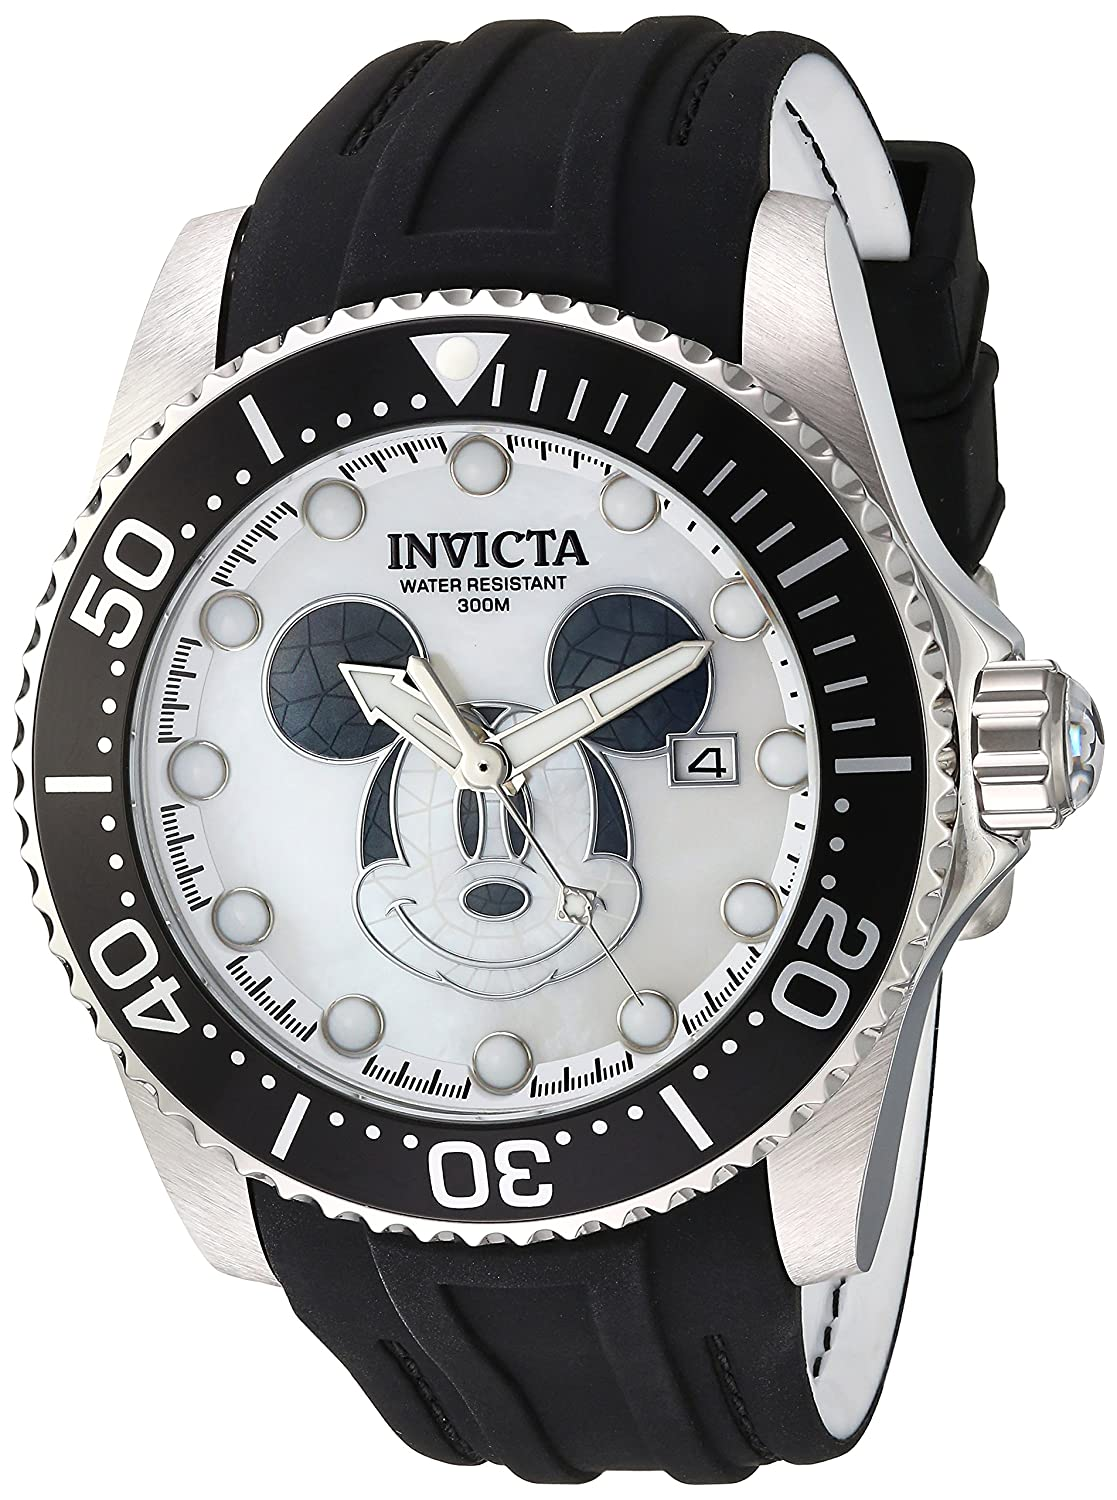 4ee2a08e5fb Amazon.com  Invicta Men s Disney Limited Edition Stainless Steel Automatic-self-Wind  Watch with Silicone Strap